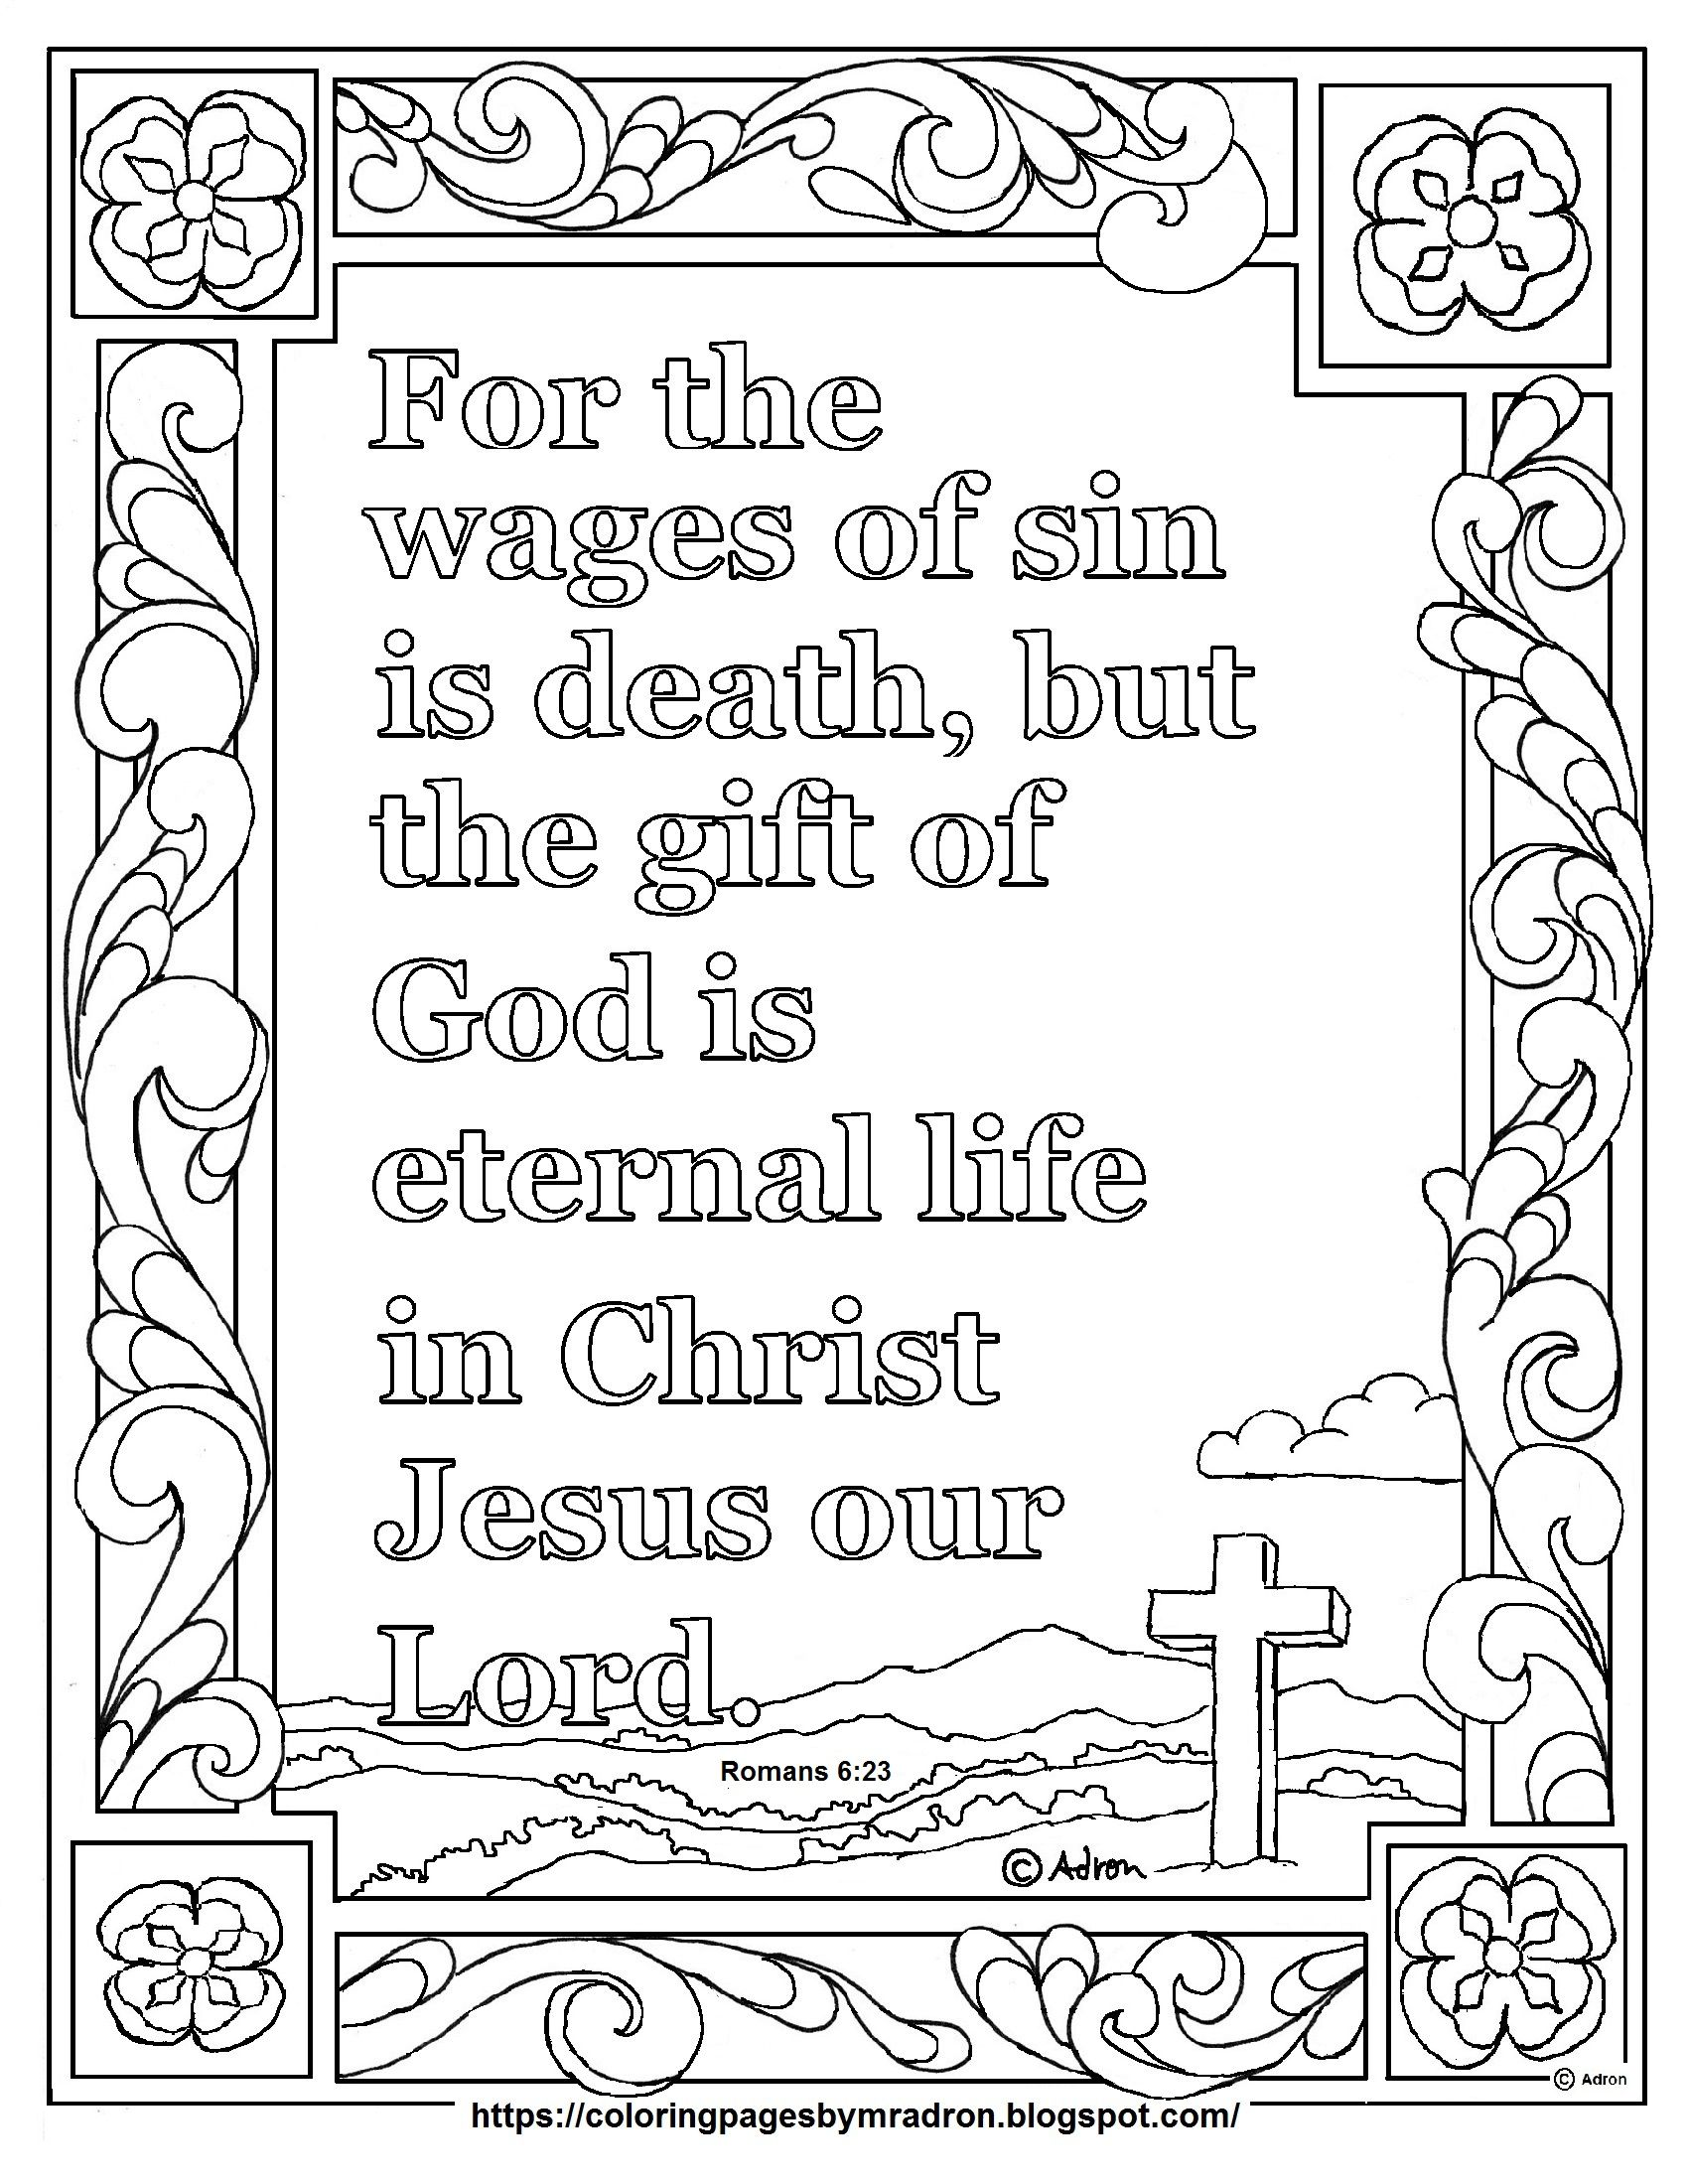 Print And Color Page For Romans 6 23 The Wages Of Sin Scripture Bible Verse Coloring Page Bible Coloring Pages Bible Verse Coloring